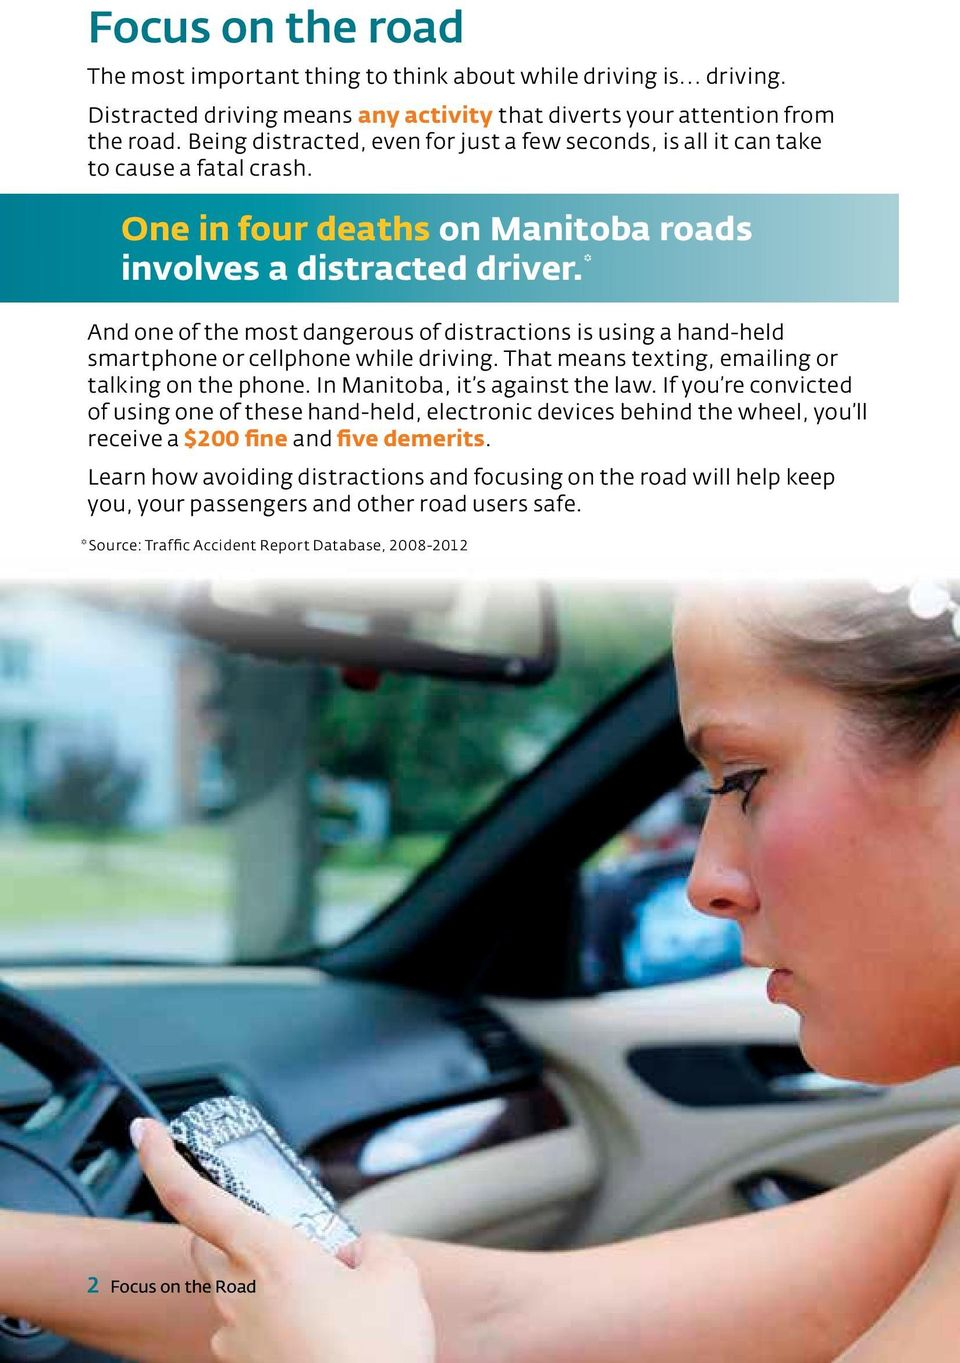 * And one of the most dangerous of distractions is using a hand-held smartphone or cellphone while driving. That means texting, emailing or talking on the phone. In Manitoba, it s against the law.